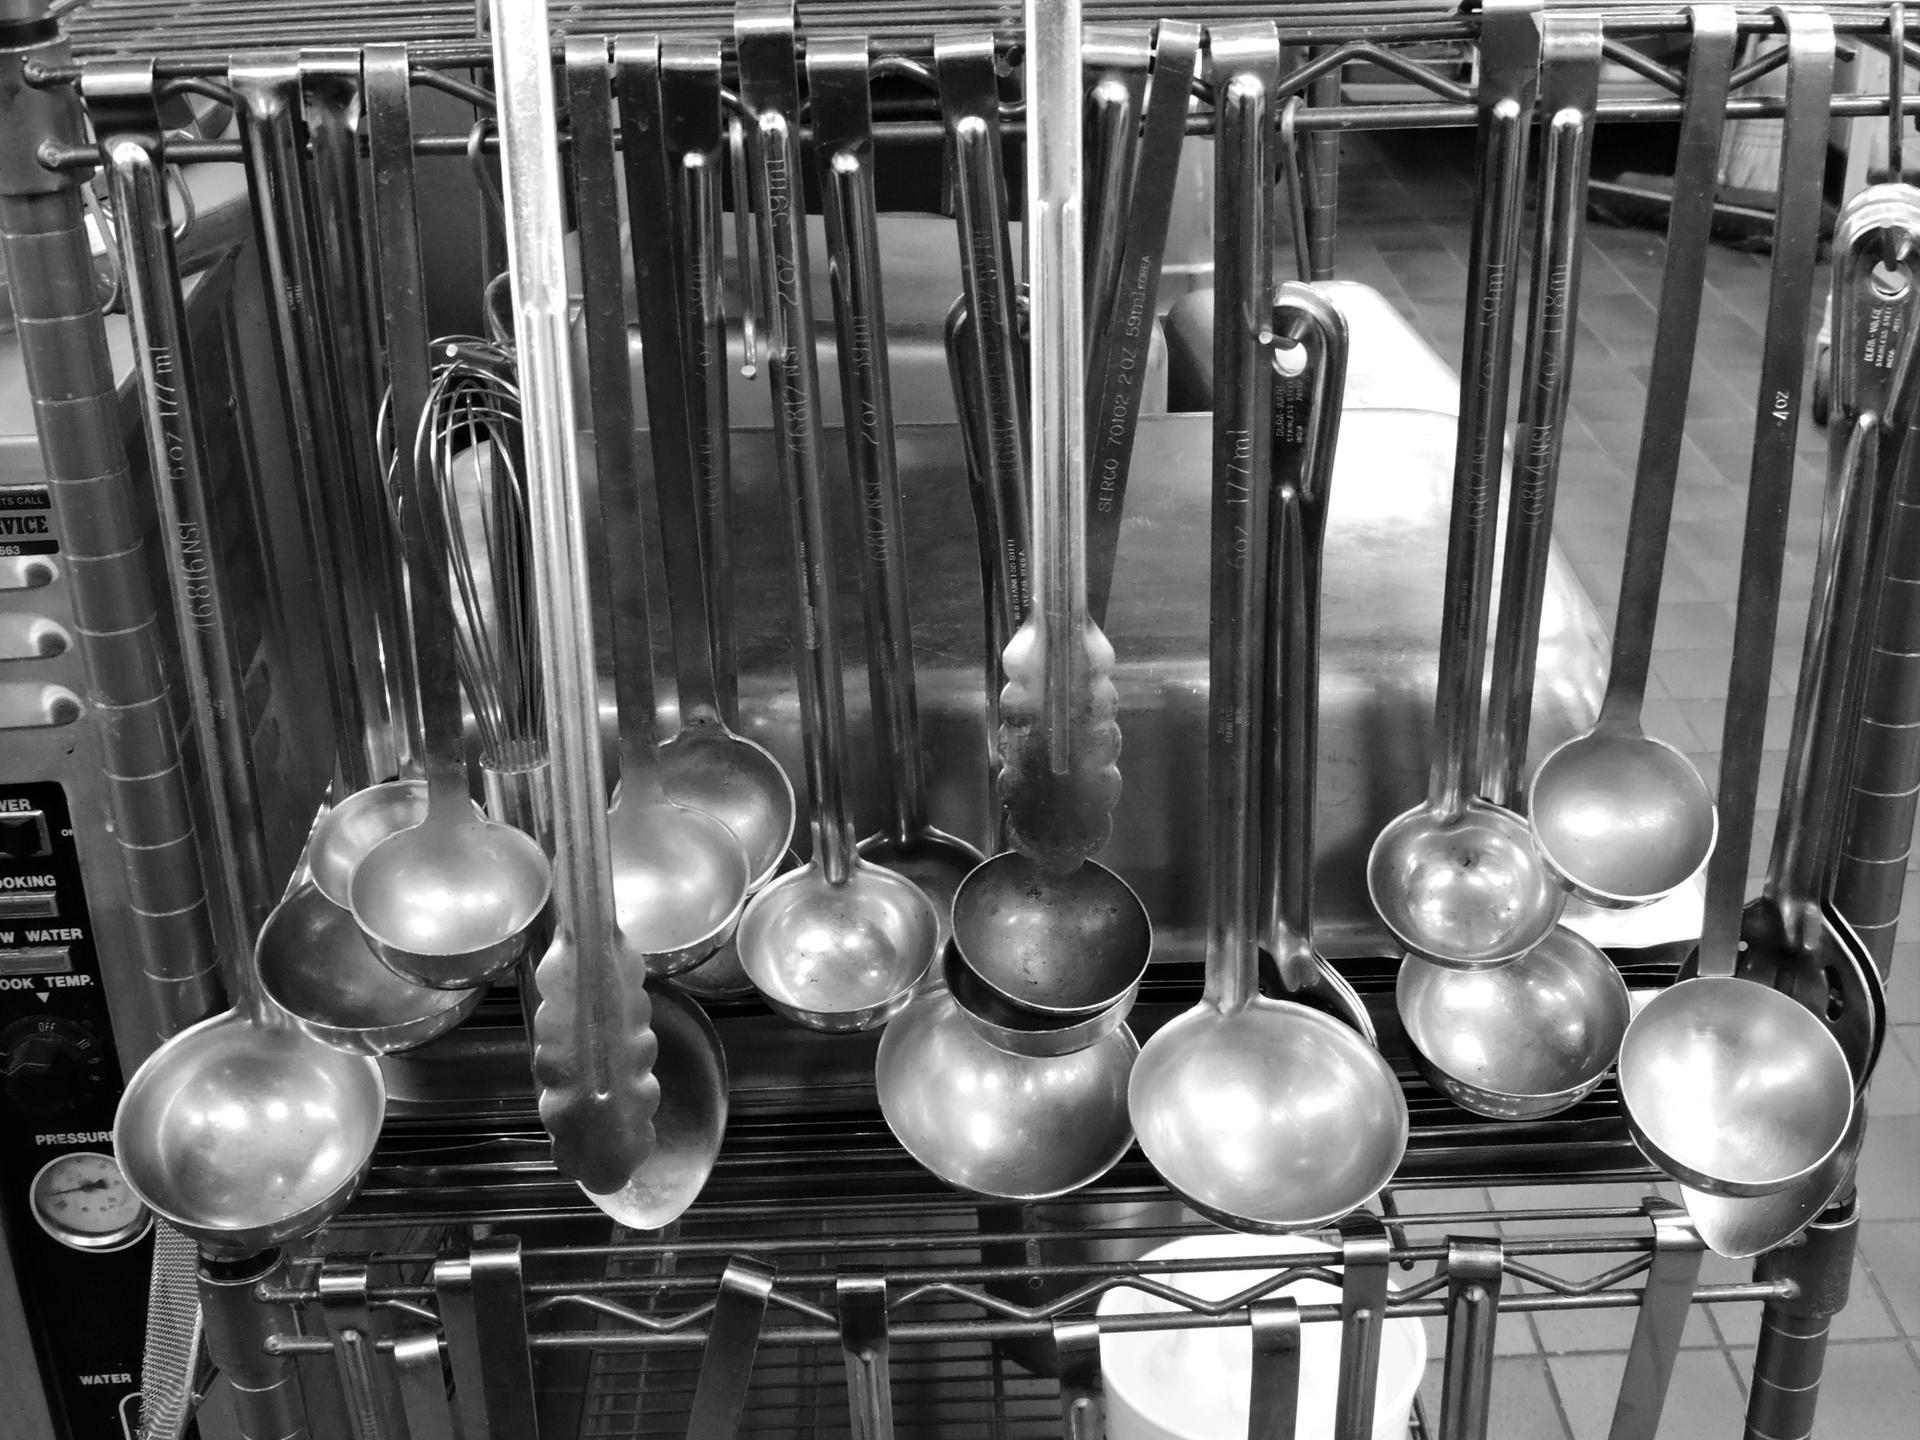 Ladles hanging from a rack